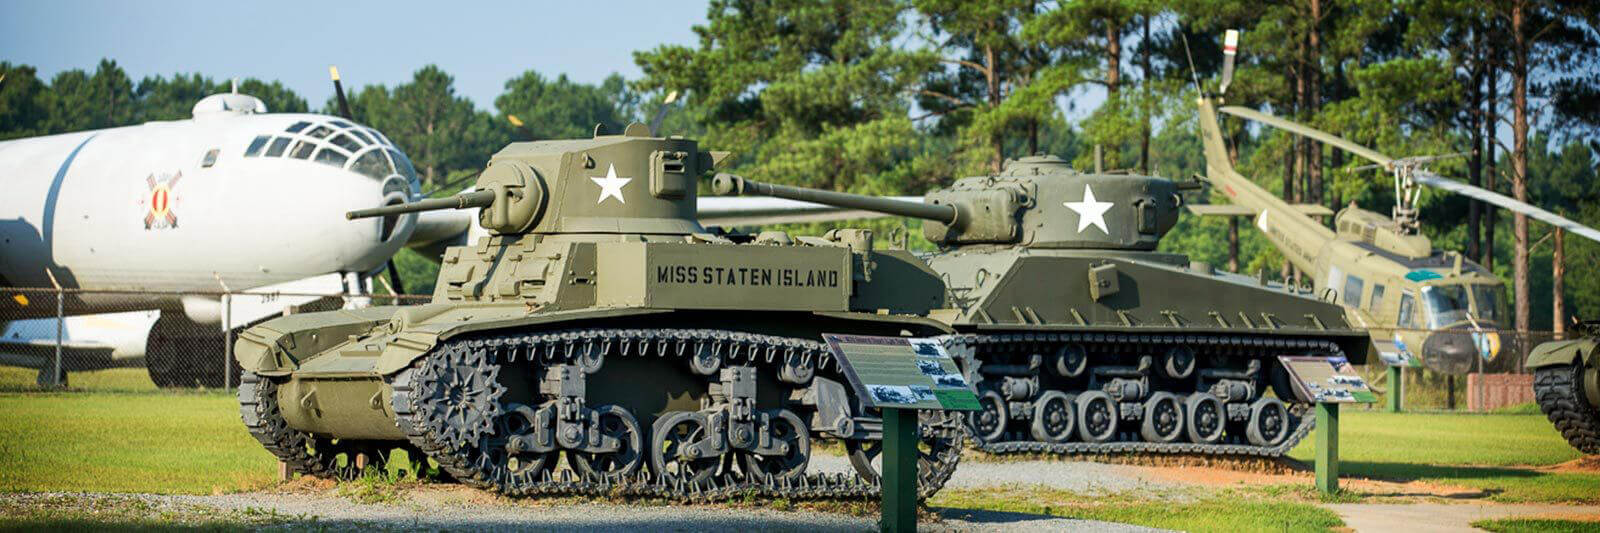 Lake-Blackshear-Georgia-Military-Museum-GA-Veterans-Military-Museum